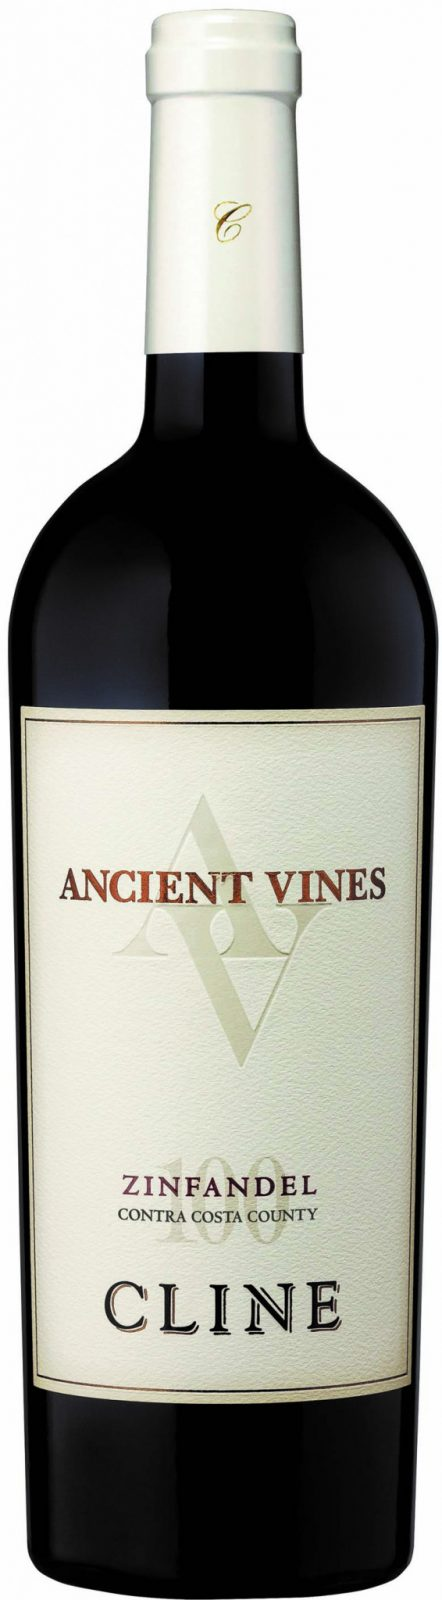 Cline Ancient Vines Zinfandel - wineaffair